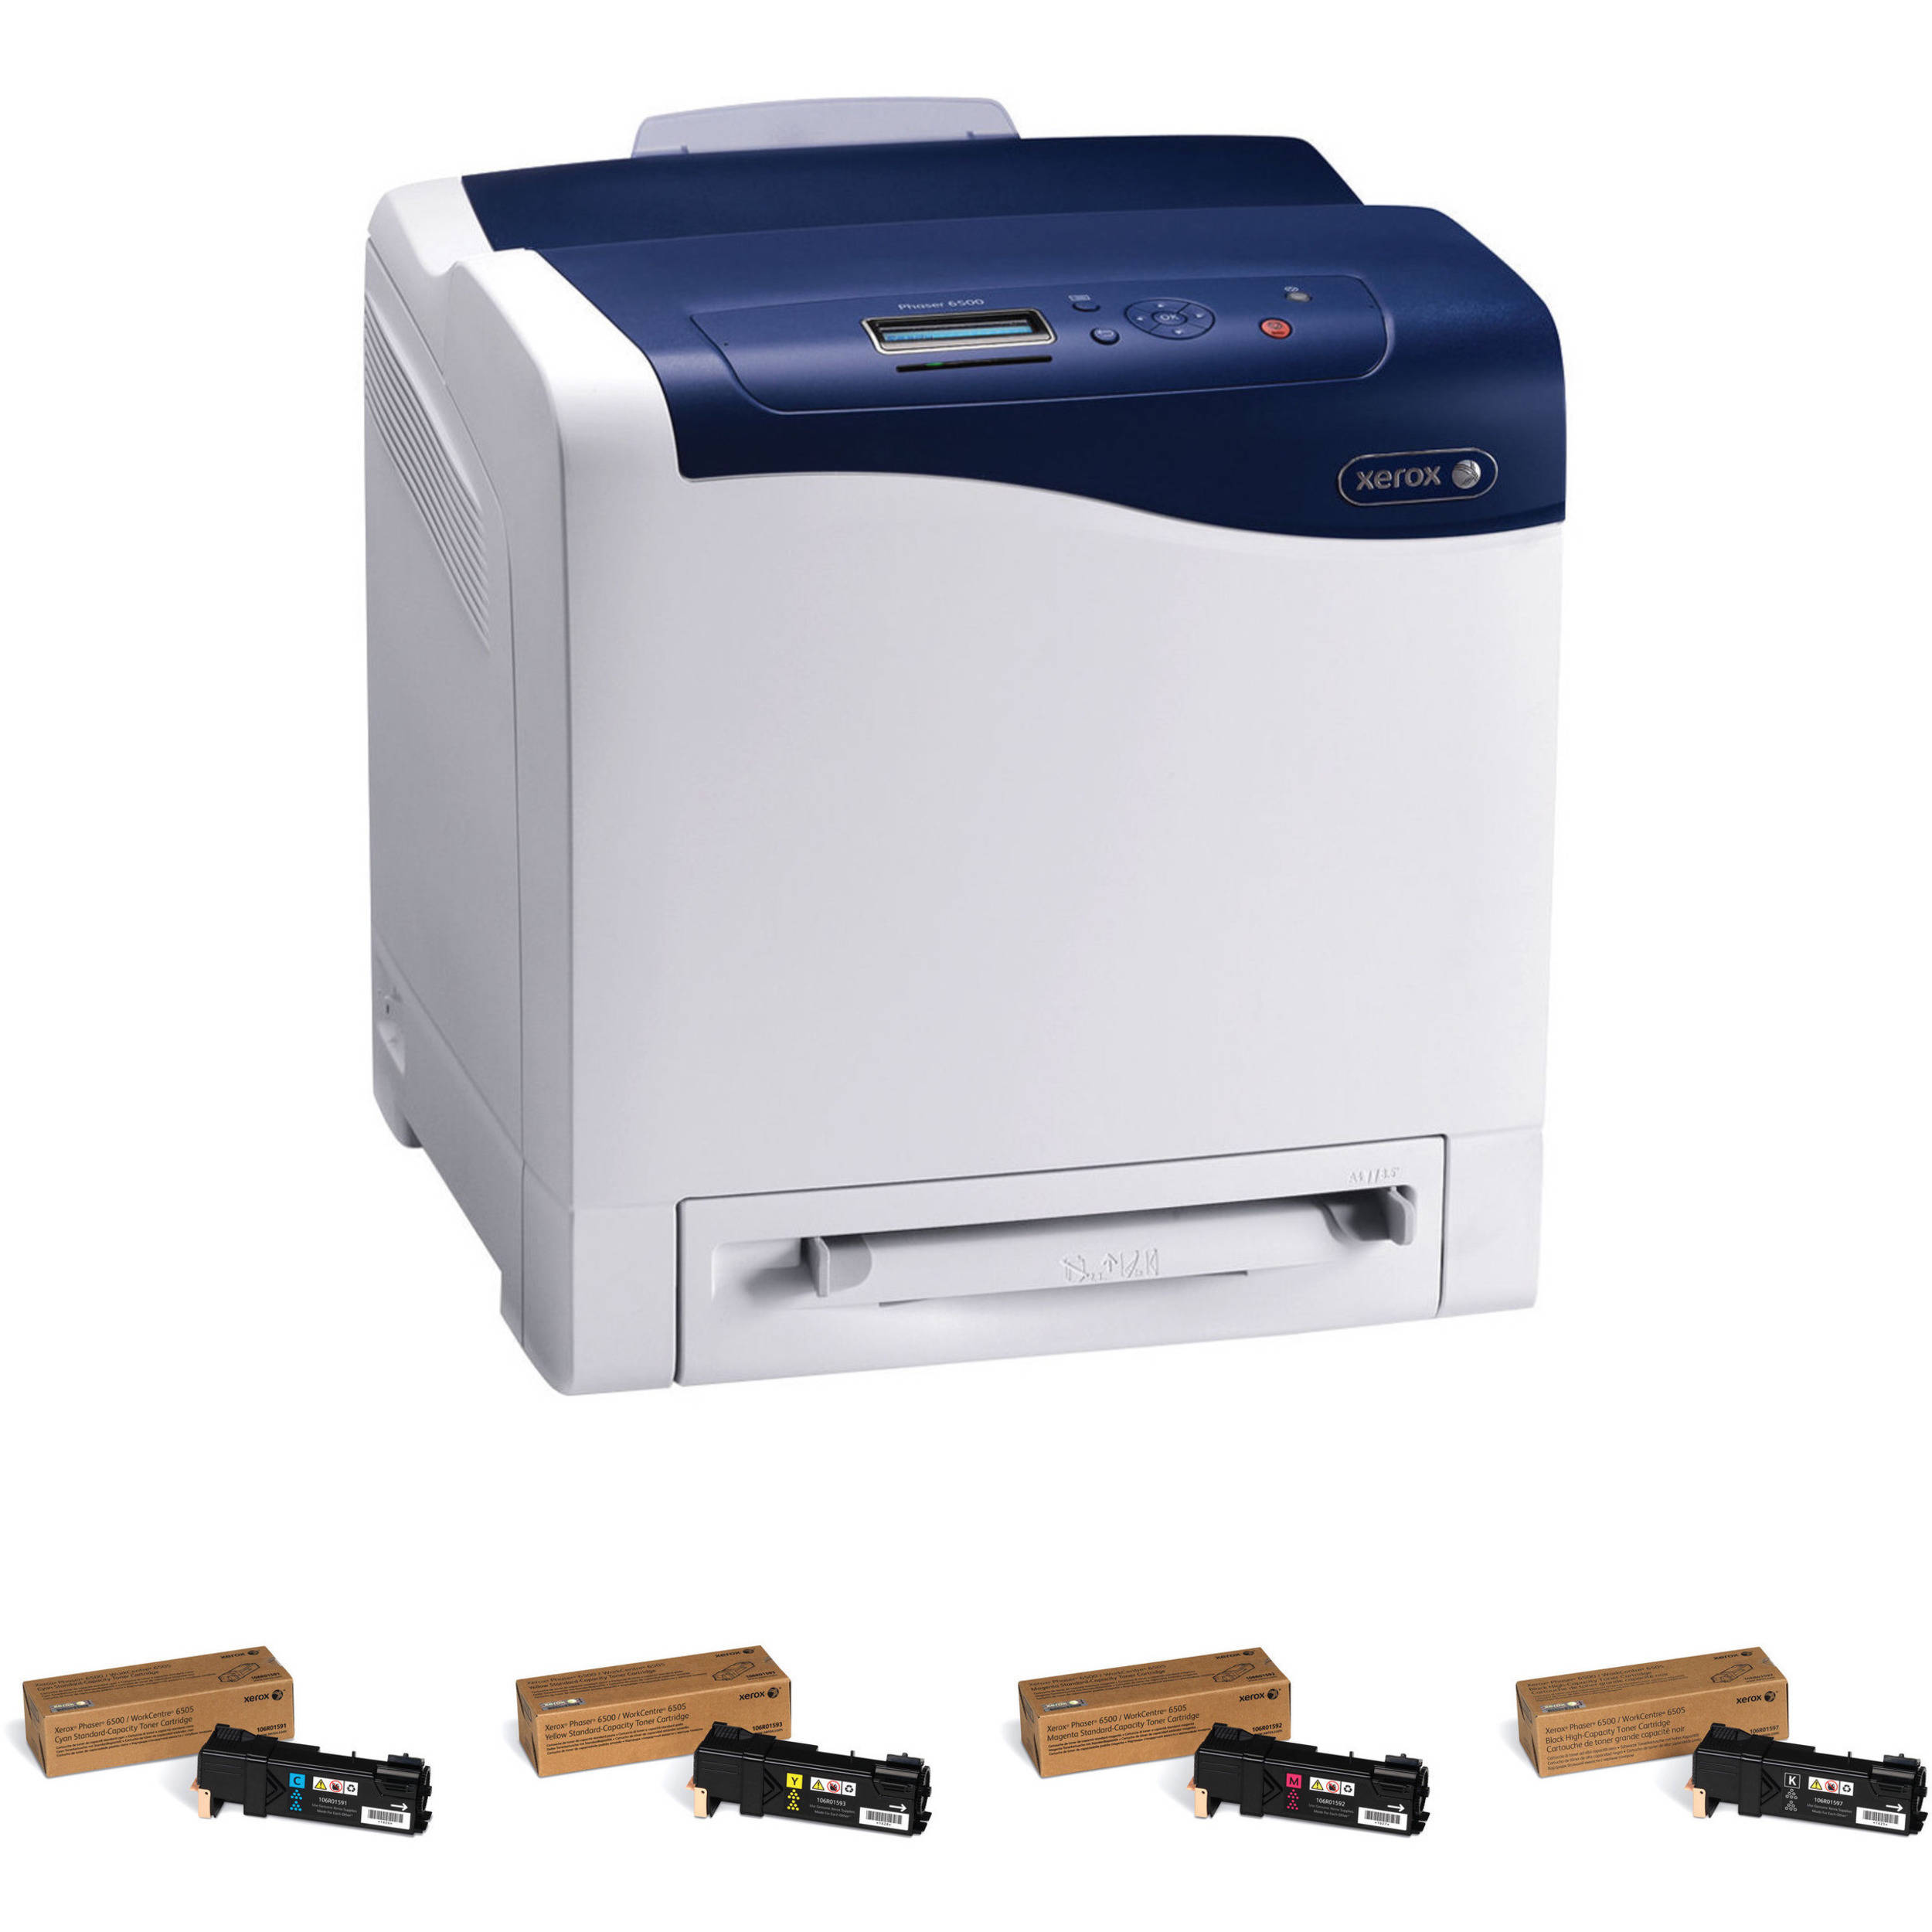 xerox phaser 6500 n network color laser printer with extra set